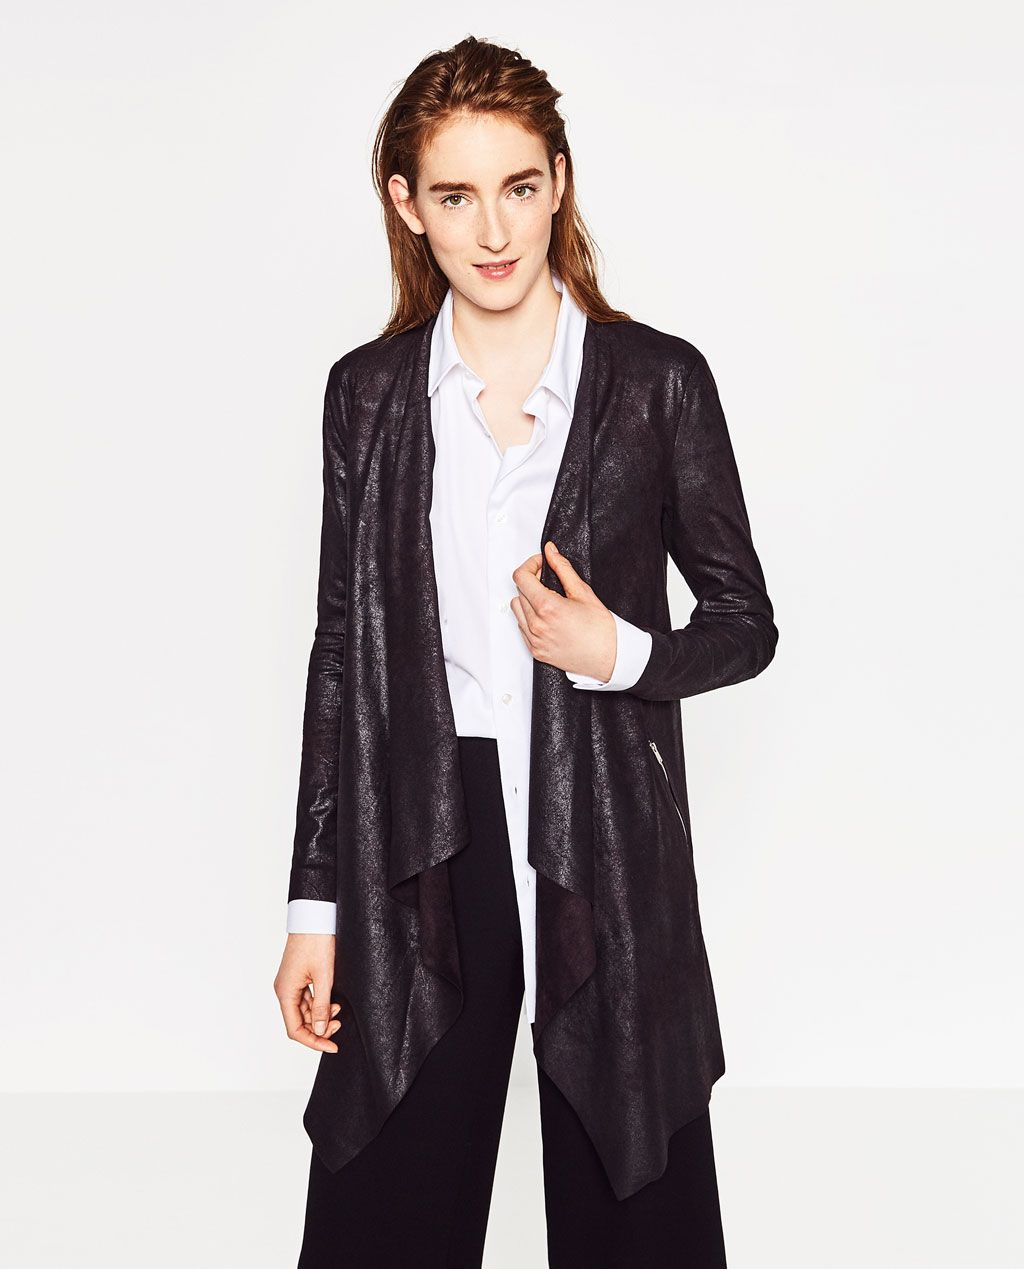 76214d7cdc SUEDE-EFFECT JACKET-OUTERWEAR-WOMAN-COLLECTION AW16   ZARA United ...